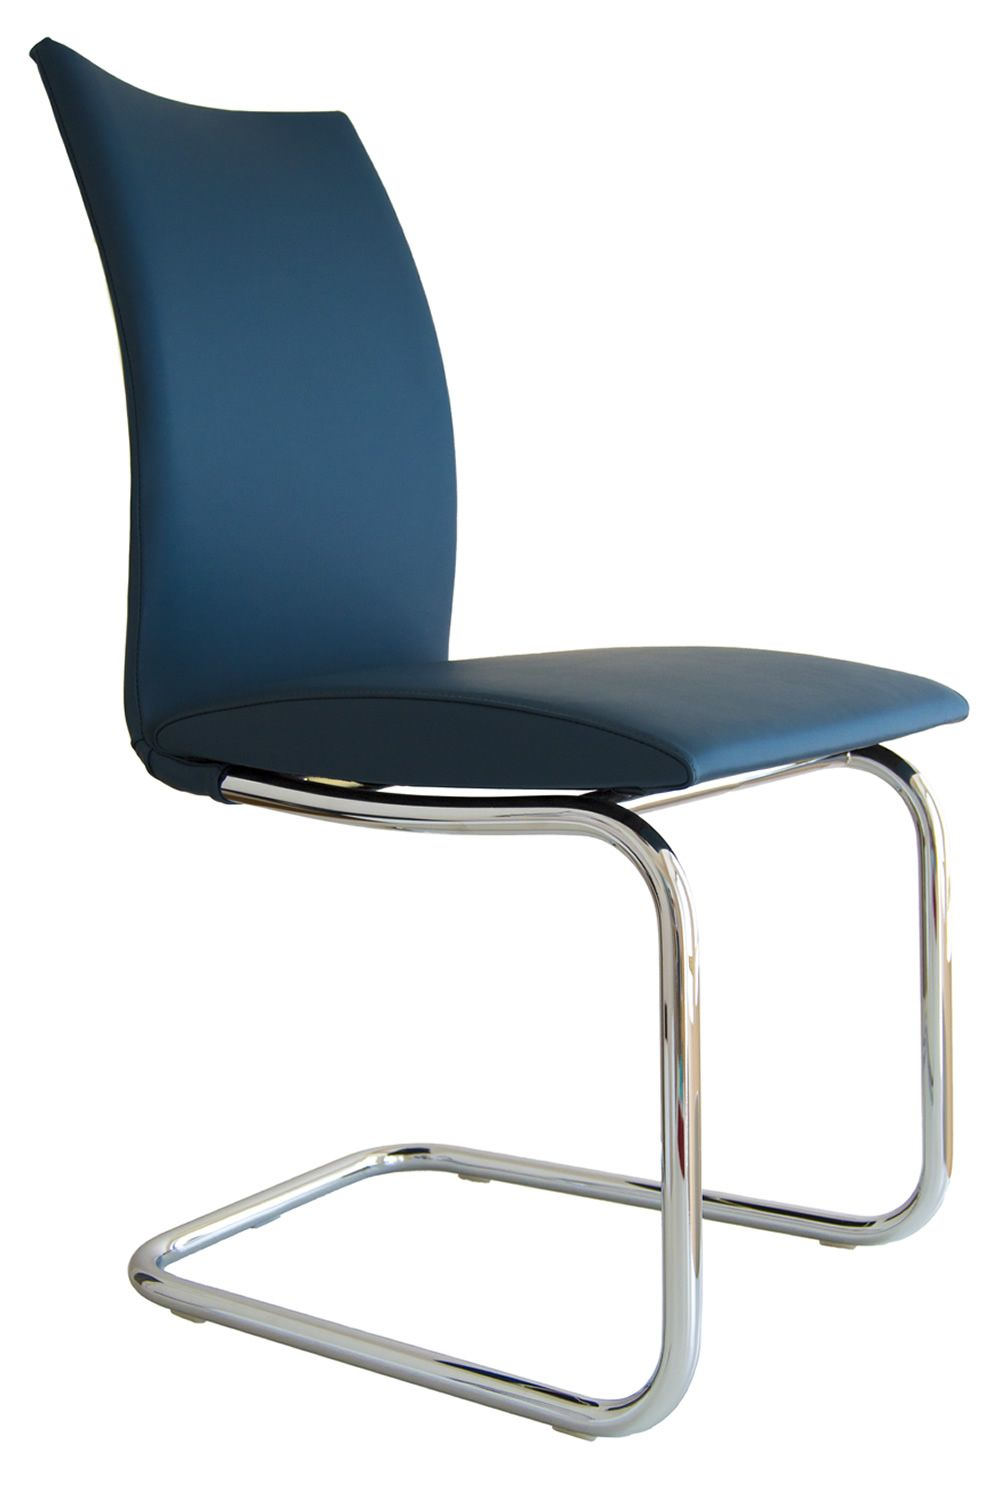 Swing Round | Chair With Polished Steel Frame, Upholstered In Blue Leather